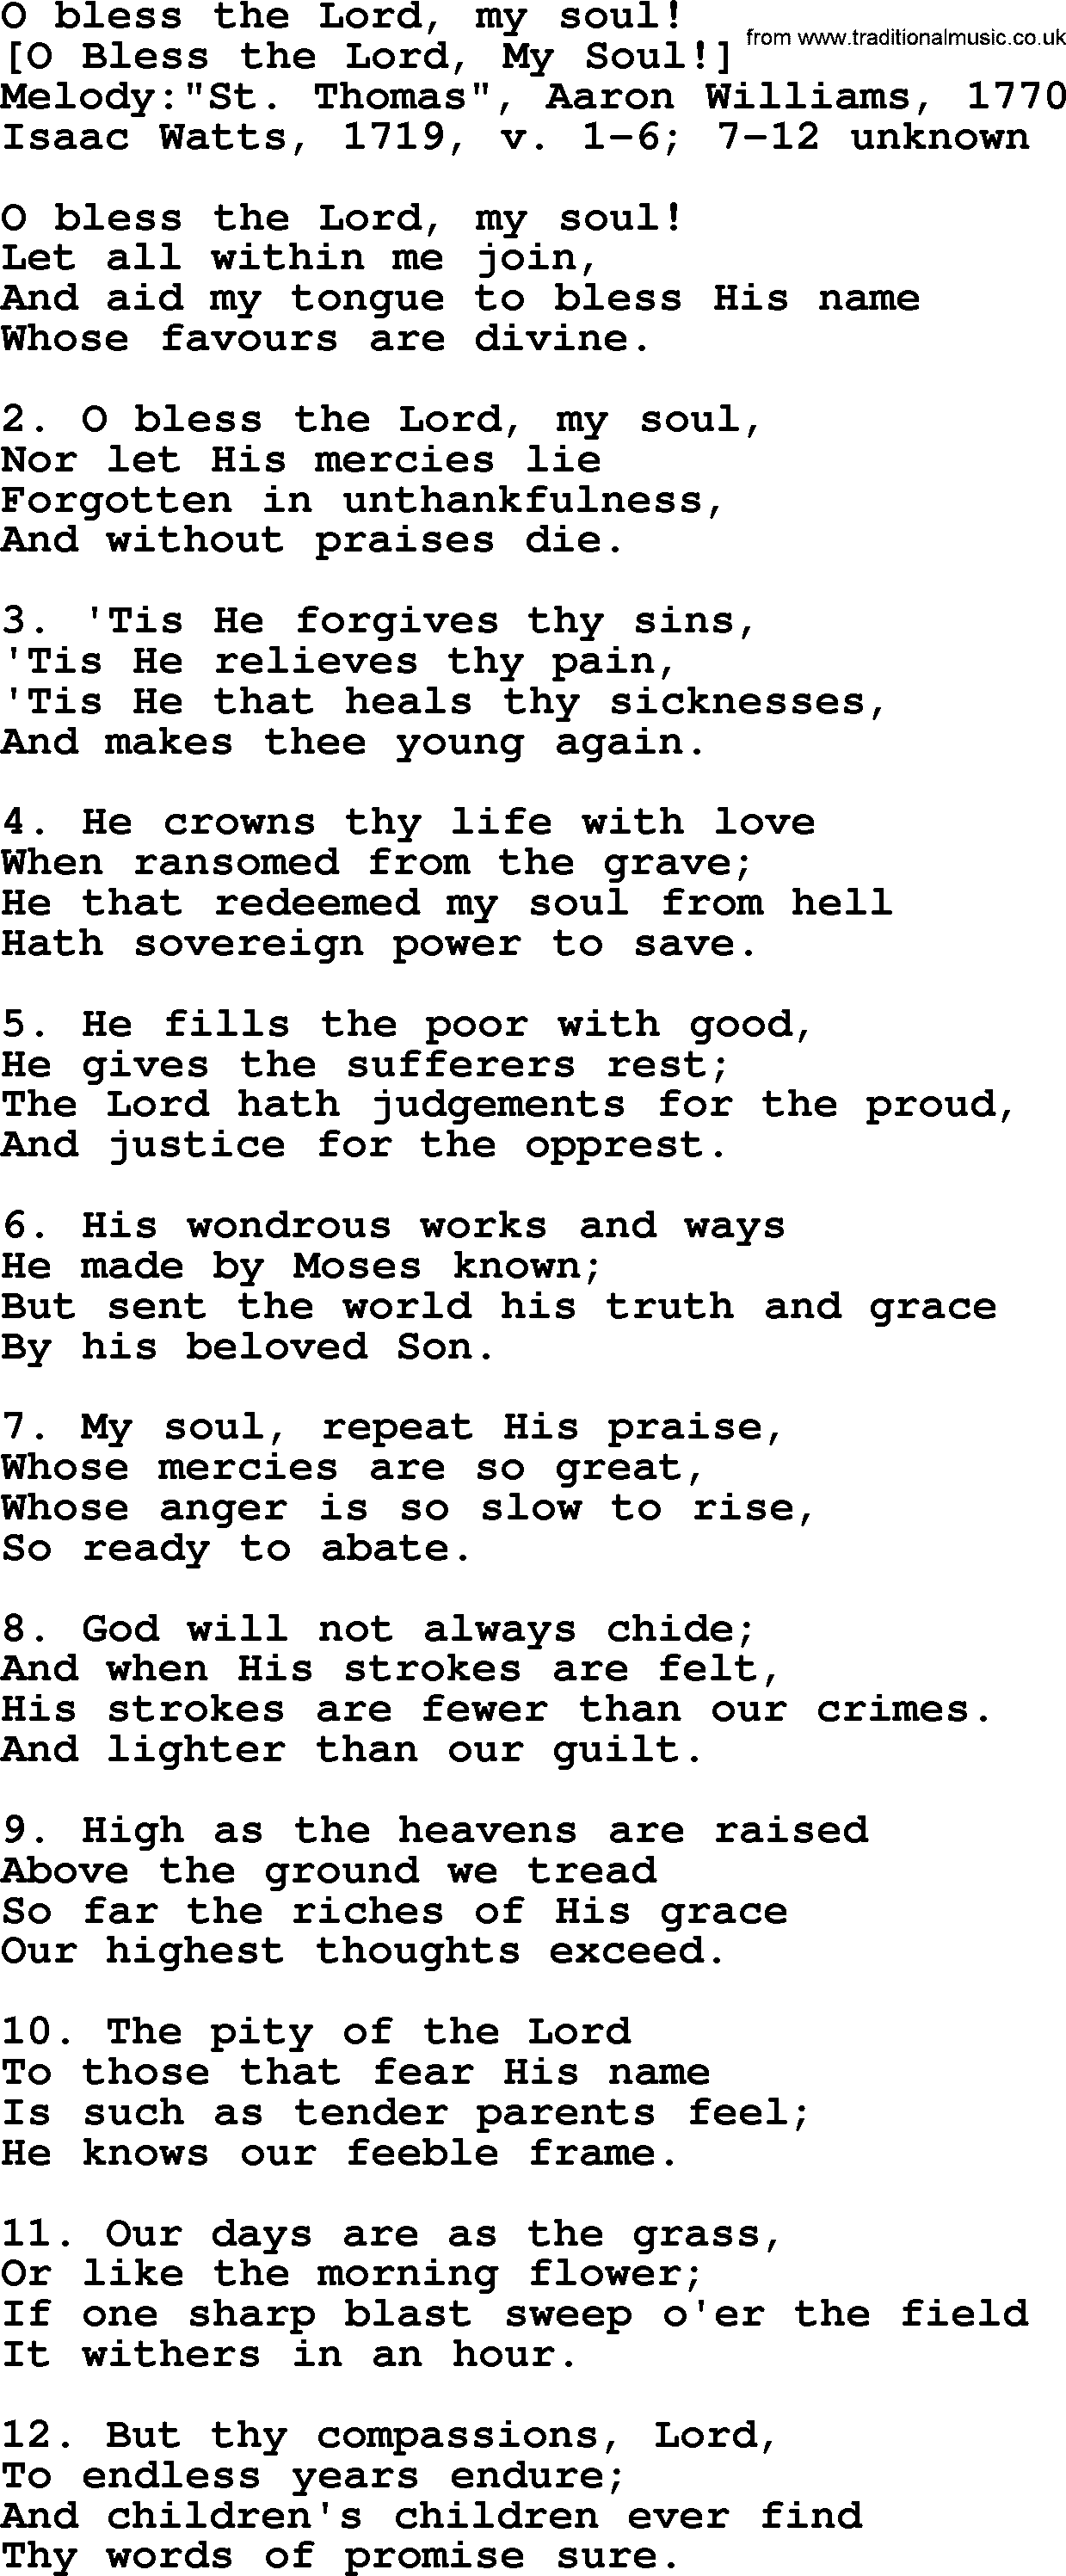 Bless the Lord, O My Soul (Doxology) | Hymnary.org